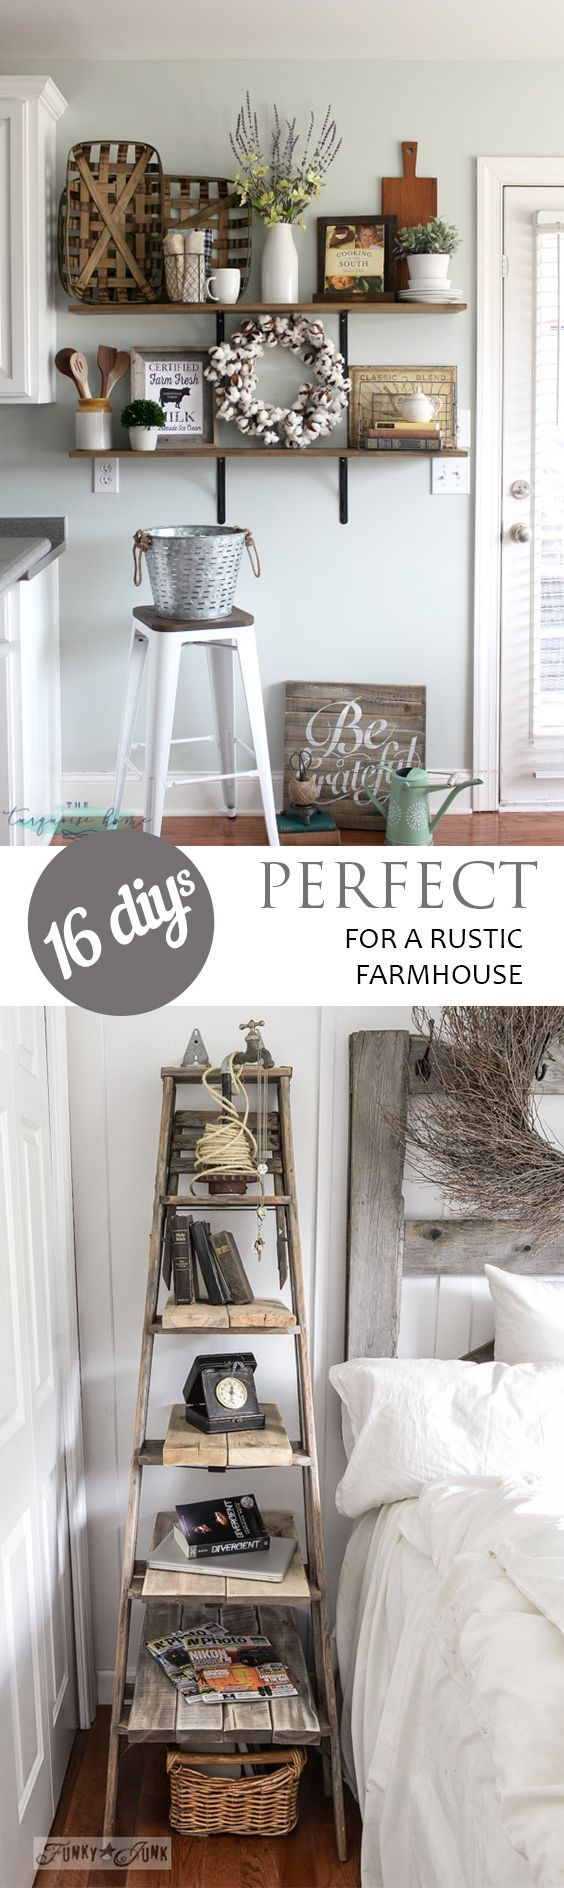 Best 25 rustic home decorating ideas on pinterest for Best home decor ideas